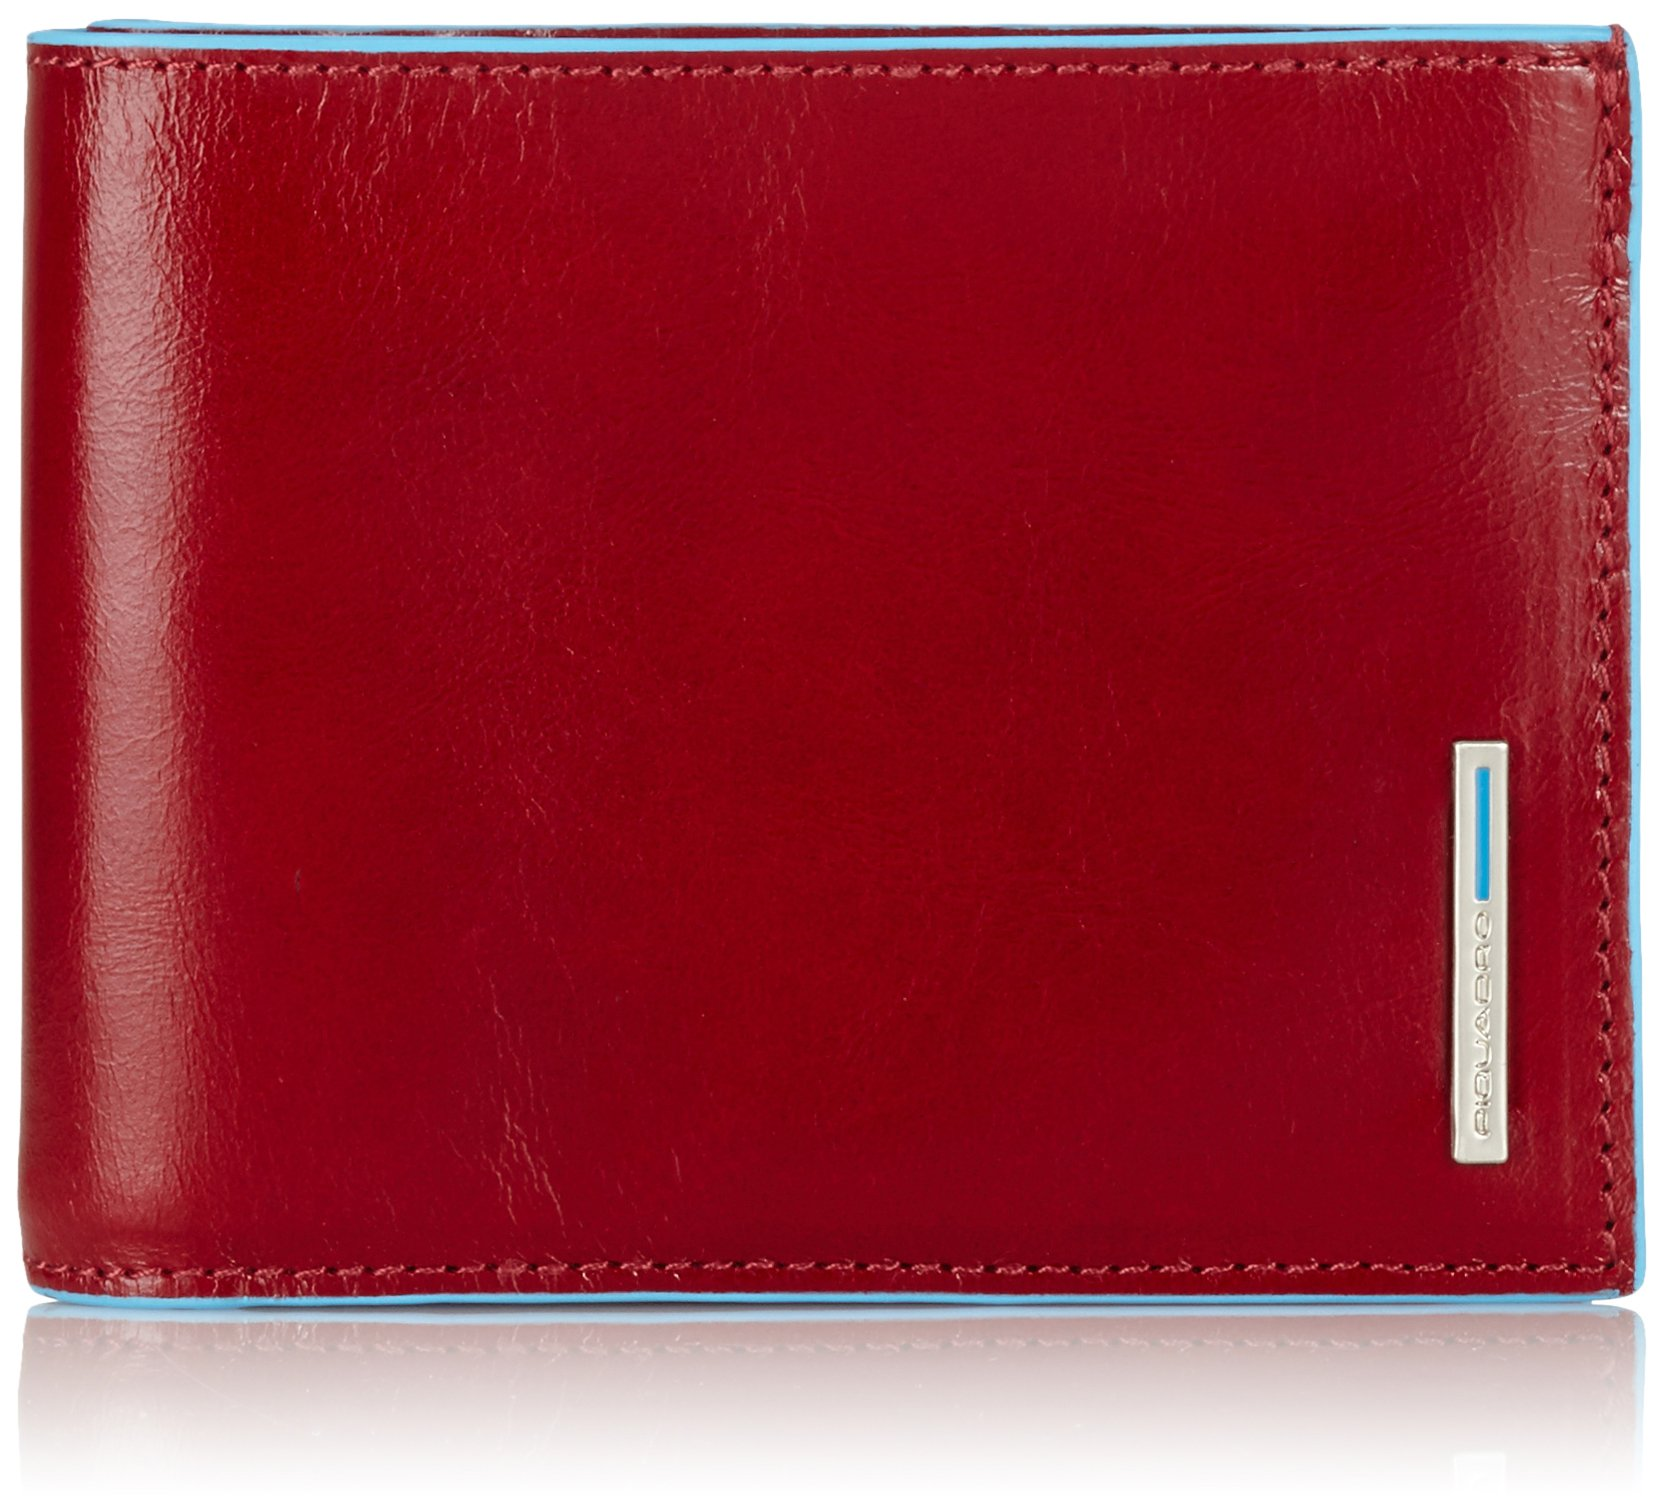 Piquadro Leather Man's Wallet with 12 Credit Card Slots, Red, One Size